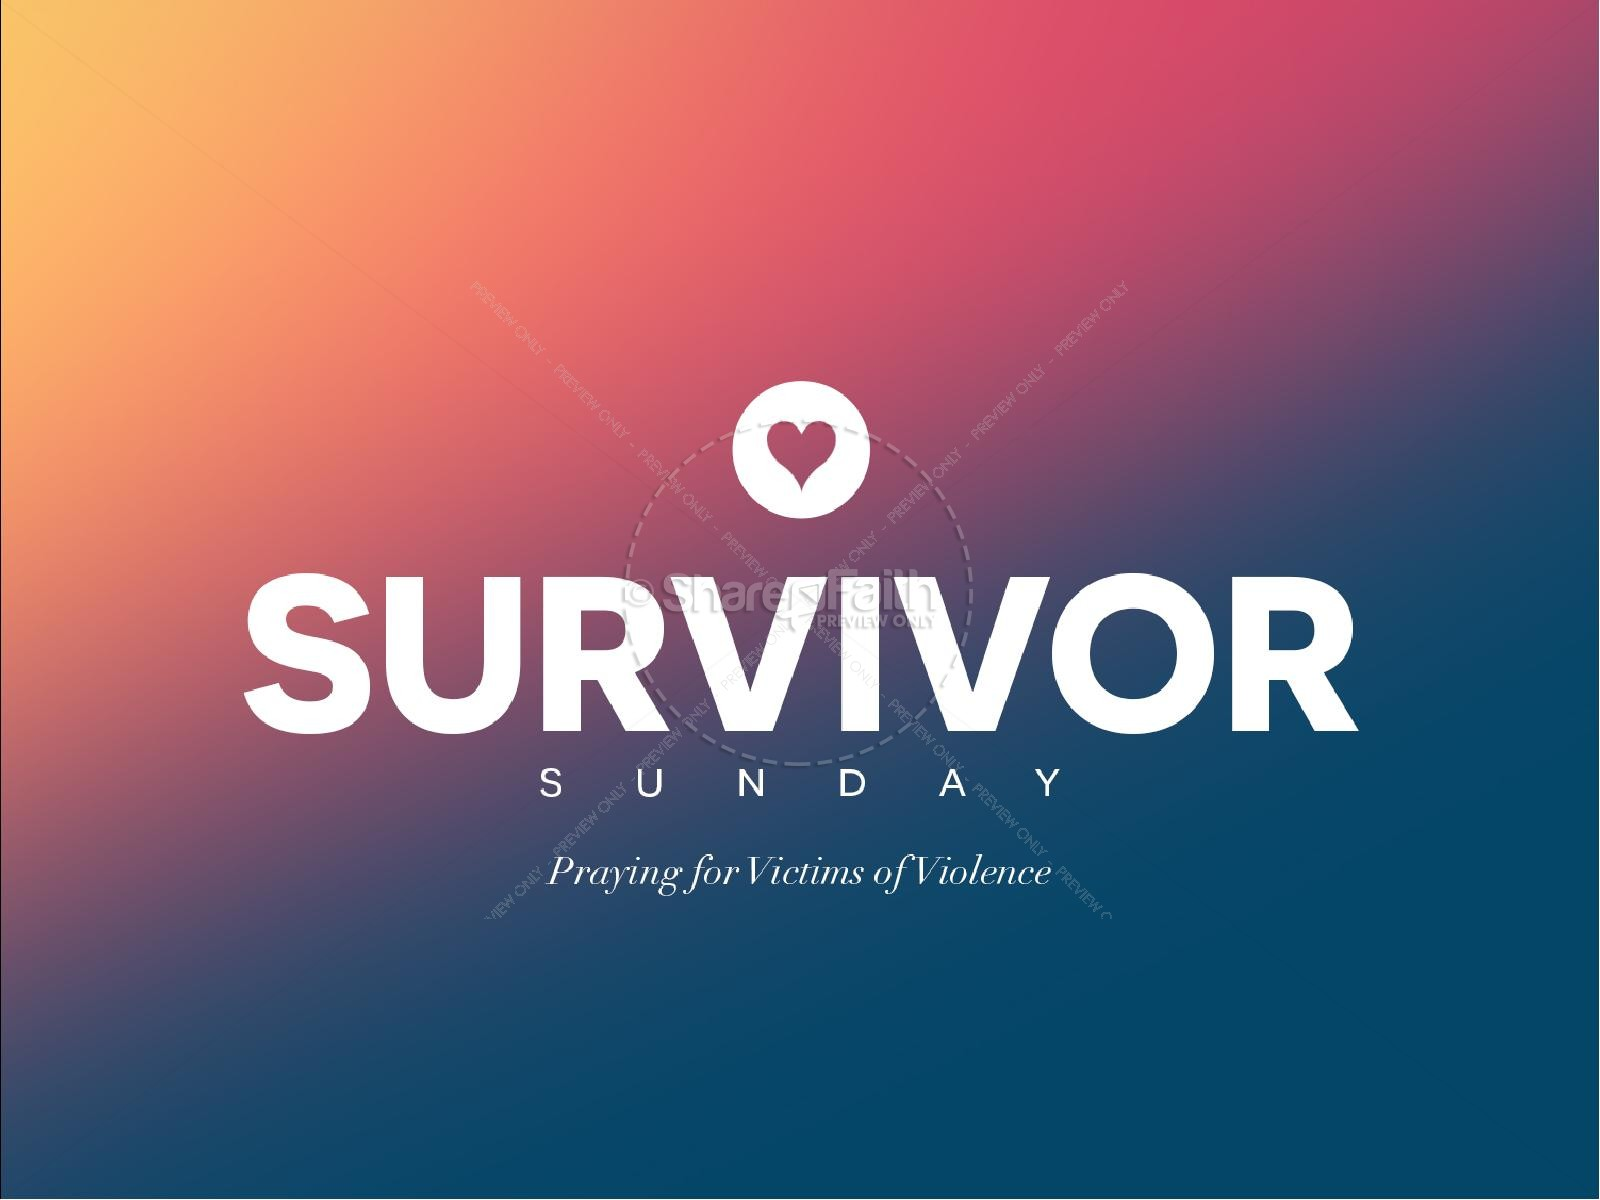 Survivor Sunday Church PowerPoint